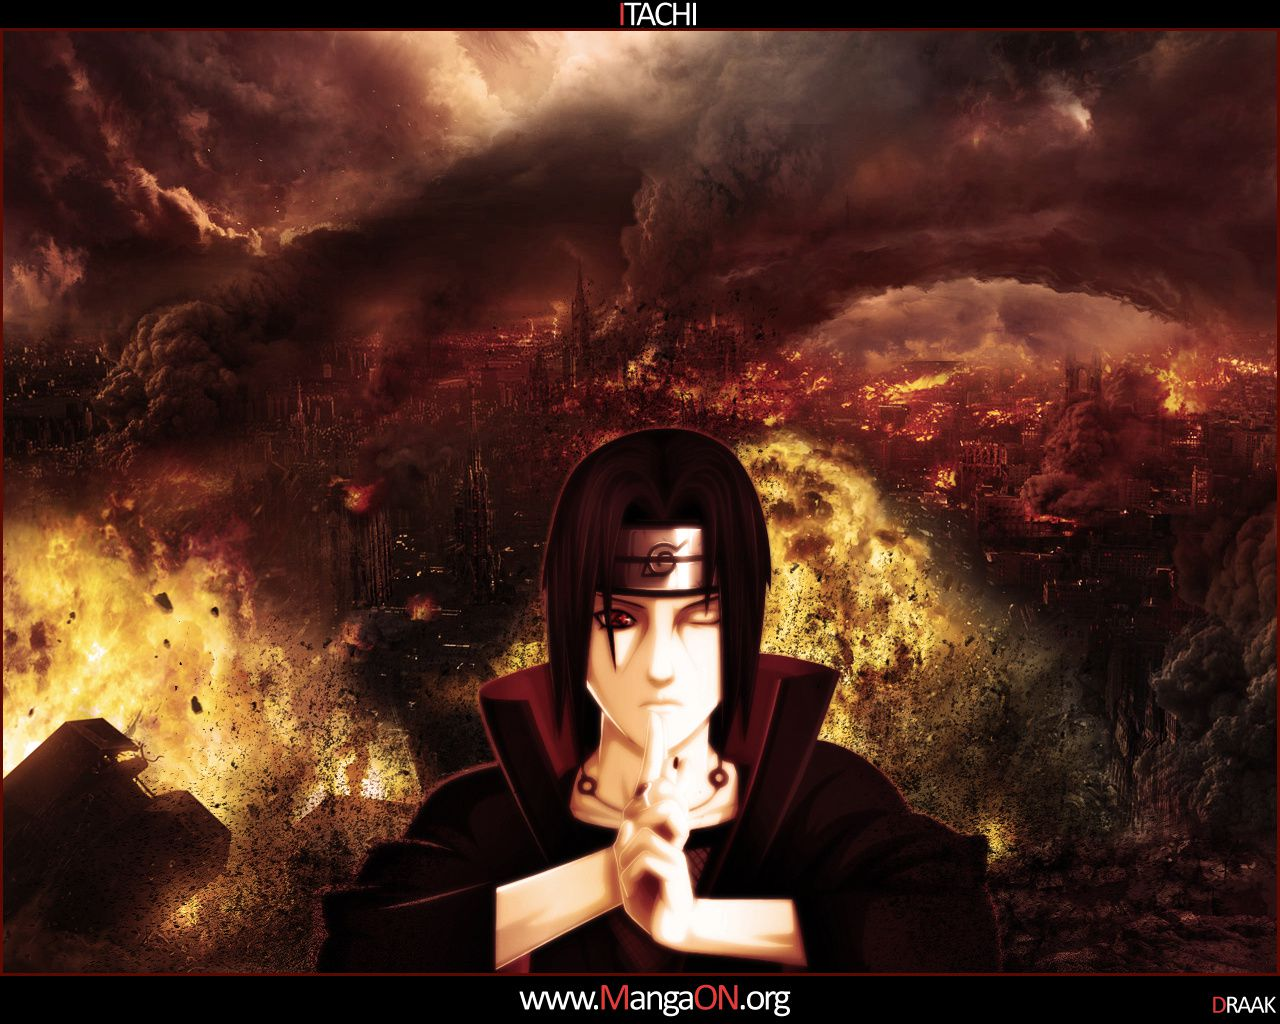 https://i0.wp.com/a34.idata.over-blog.com/1/94/63/59/Novembre2009/itachi-copy.jpg